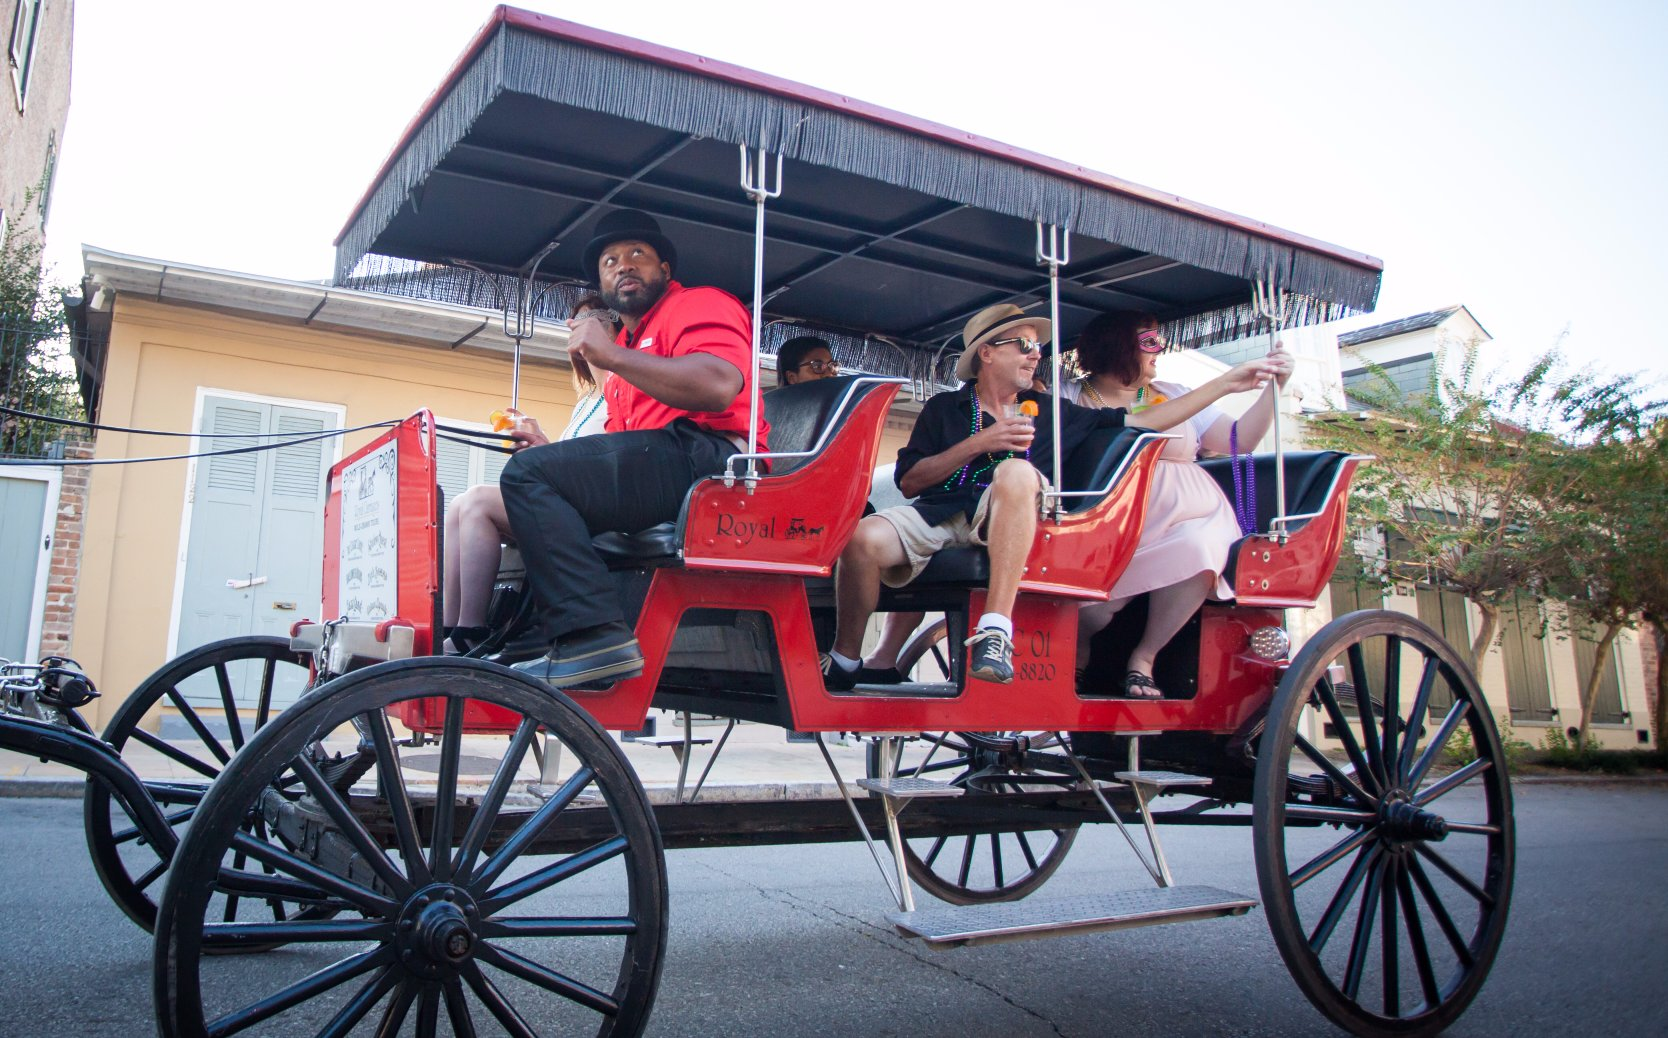 Royal Carriages French Quarter History Carriage Tours of New Orleans